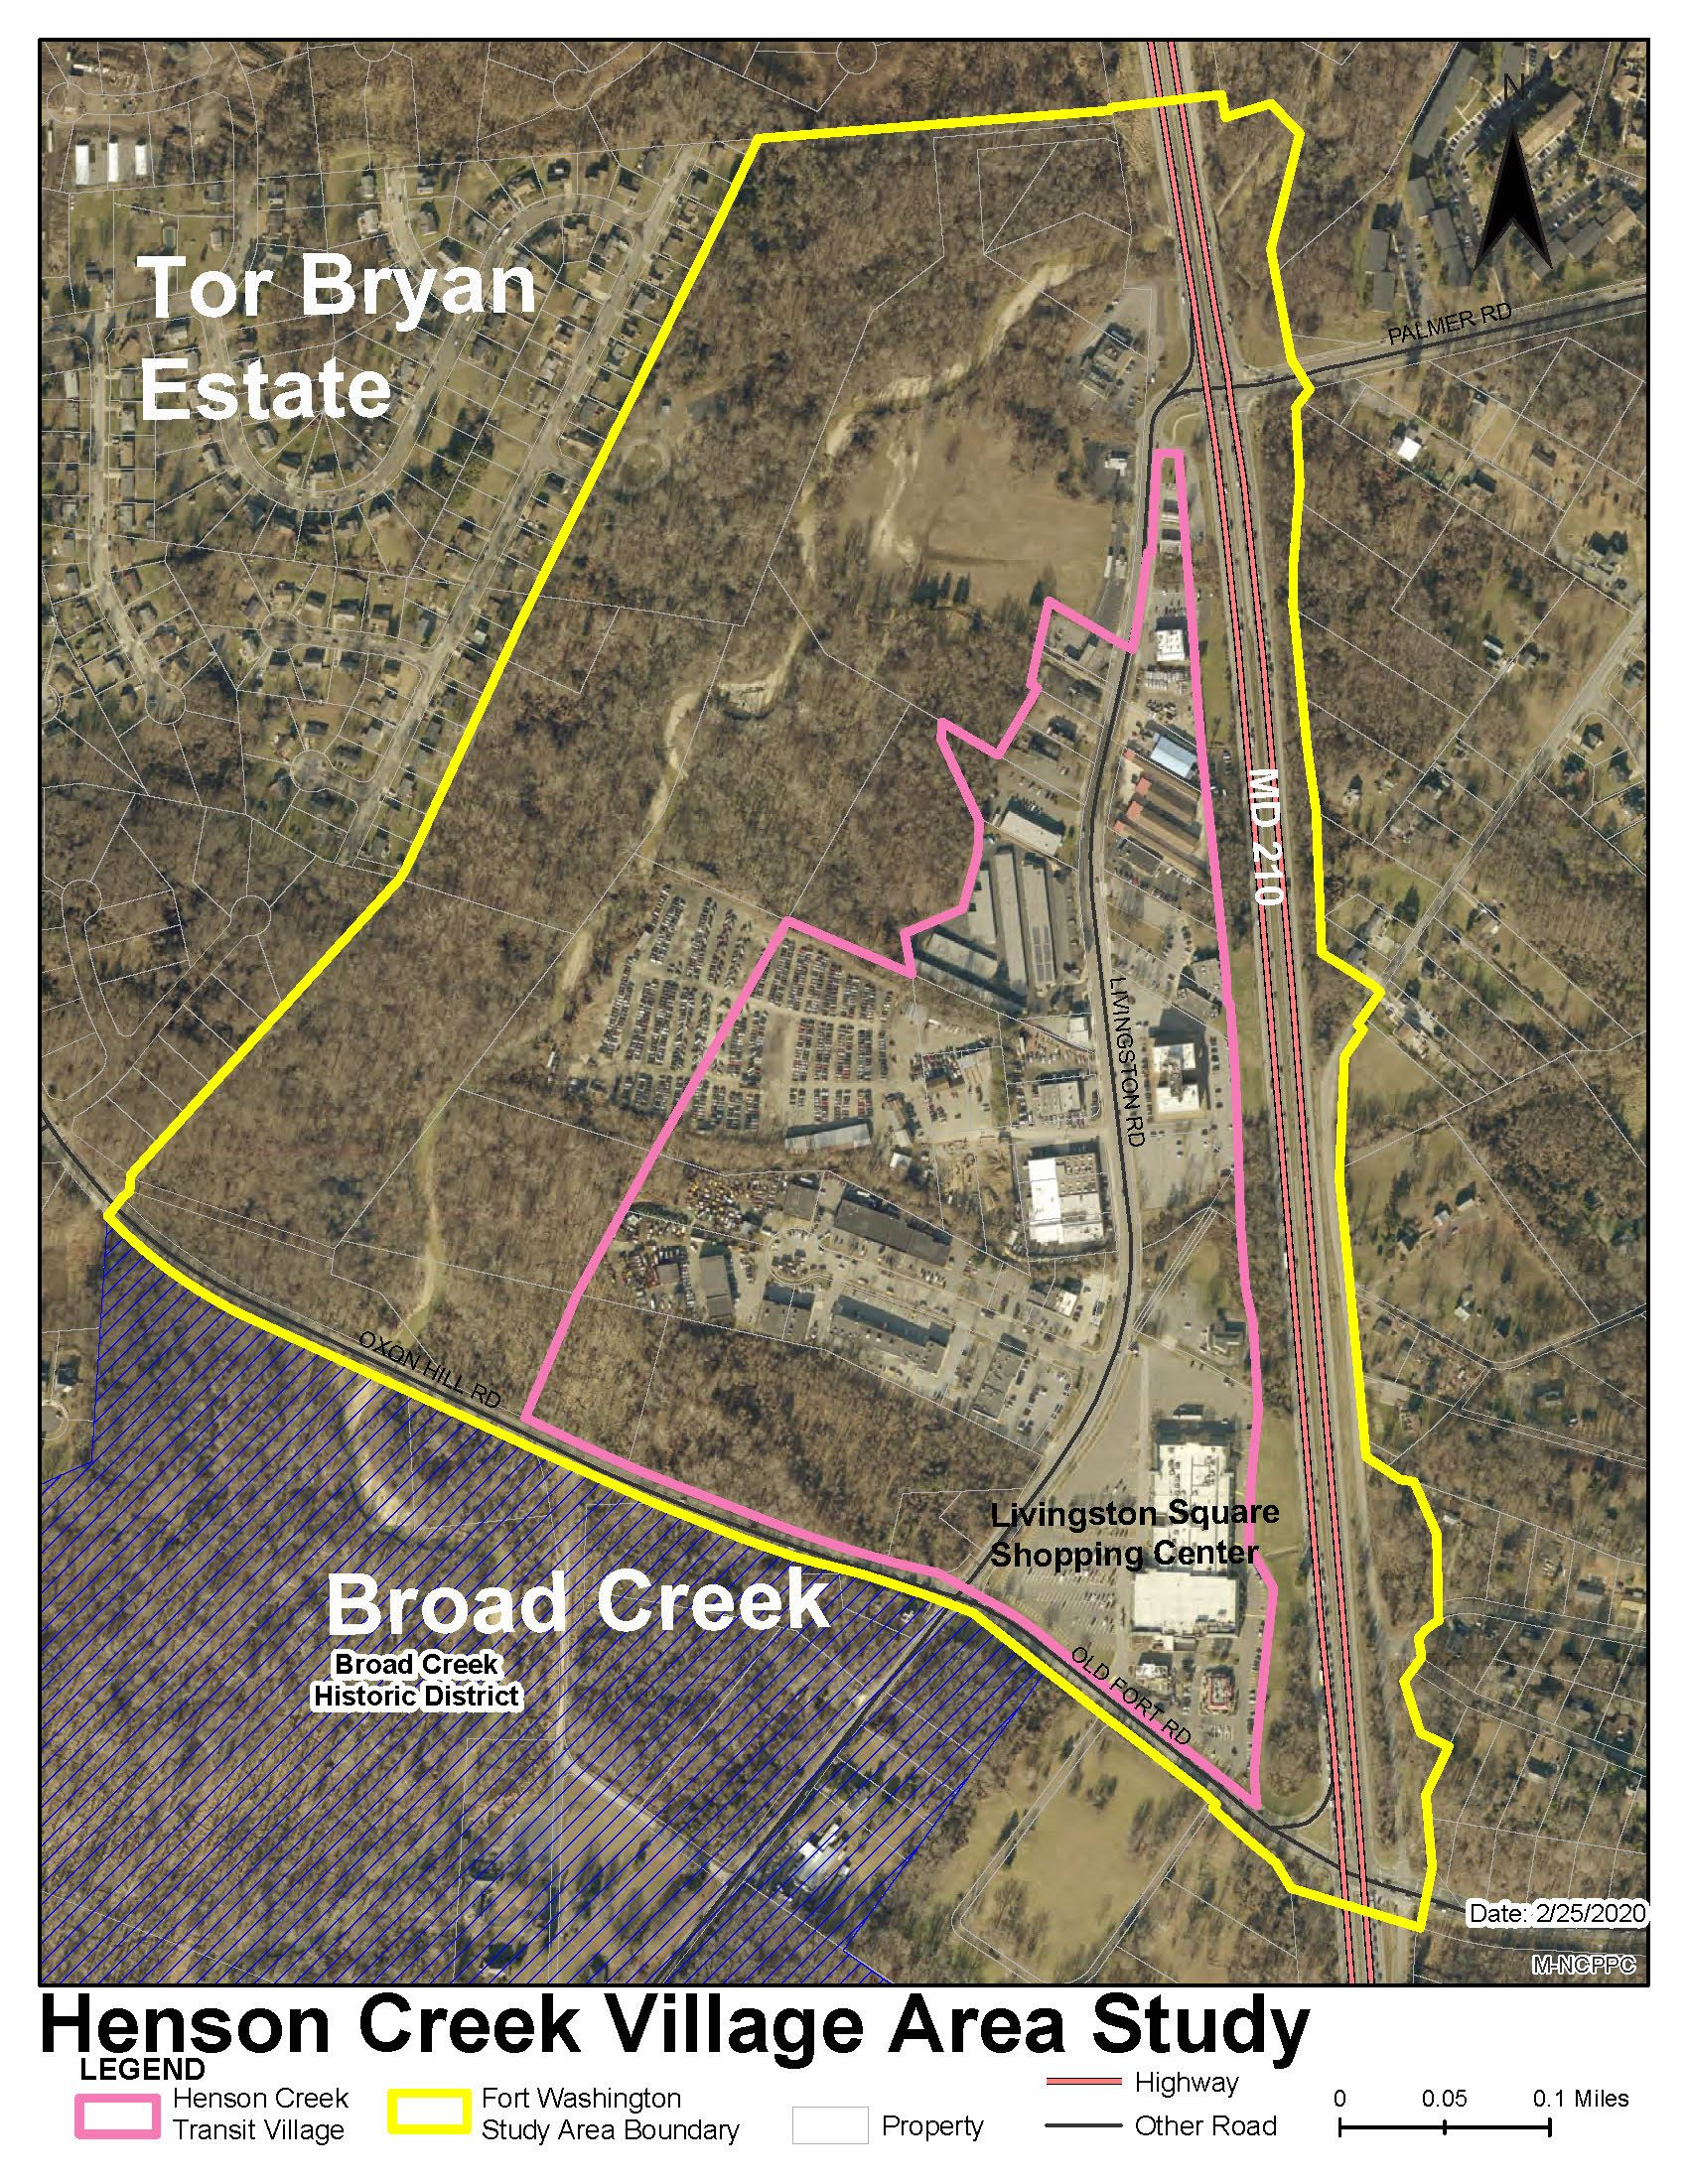 Henson Creek Transit Village Study Boundary